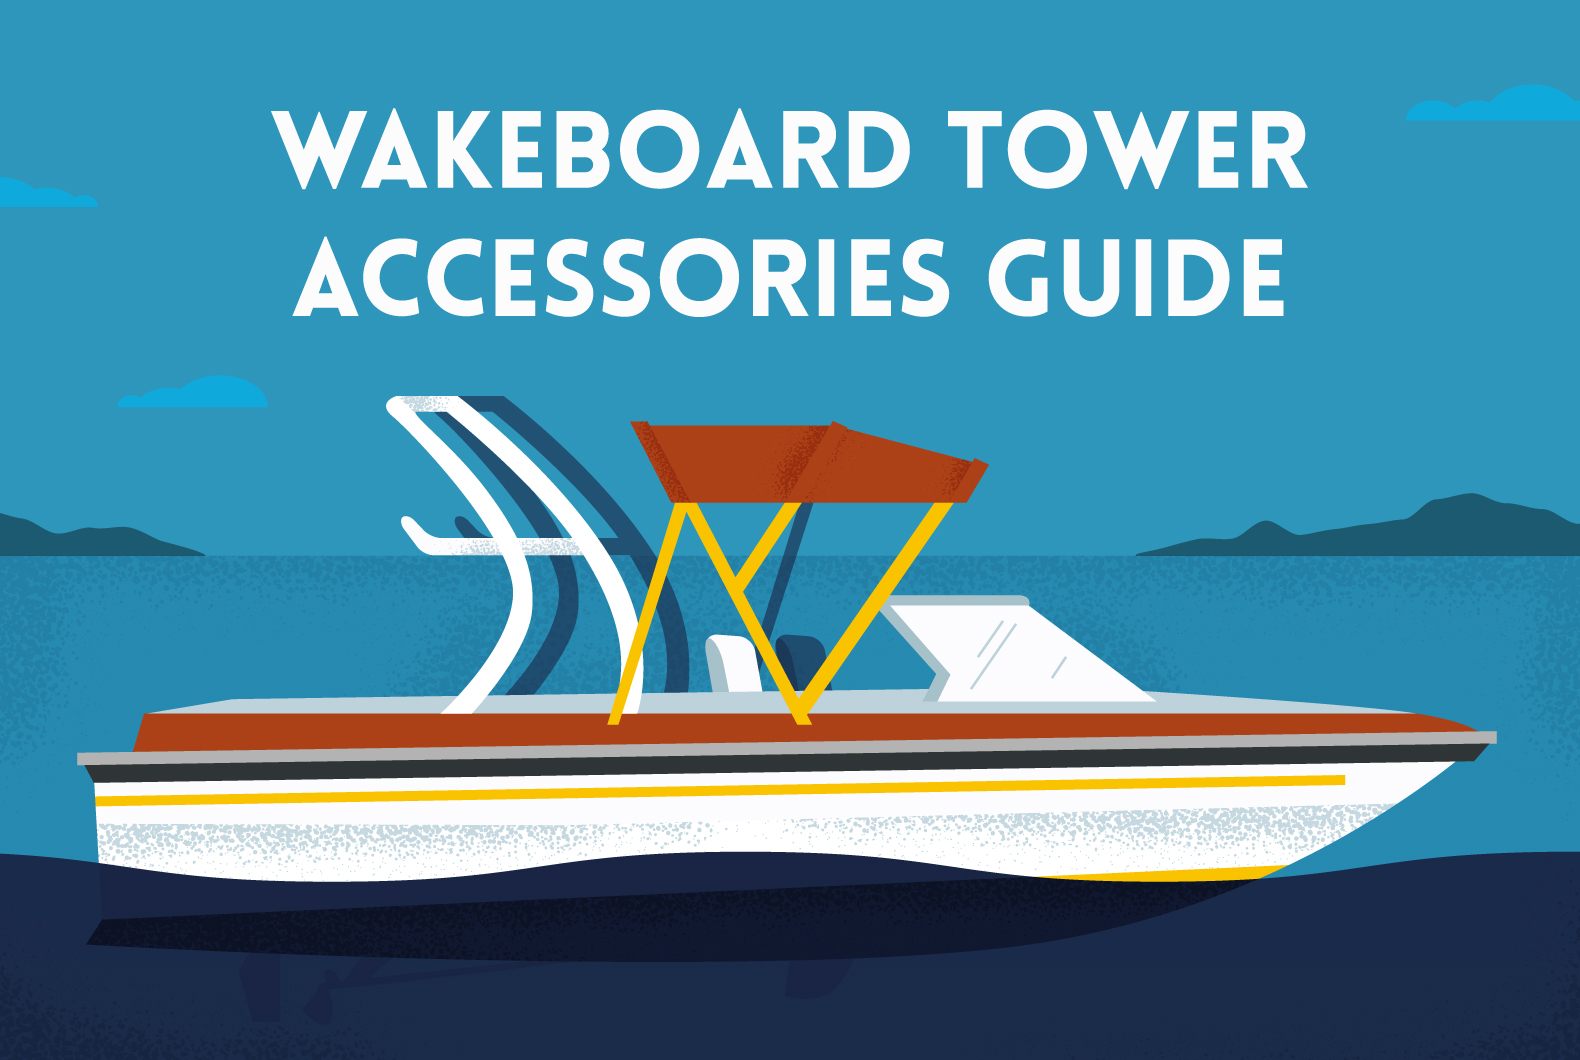 Wakeboard Tower Accessories Guide